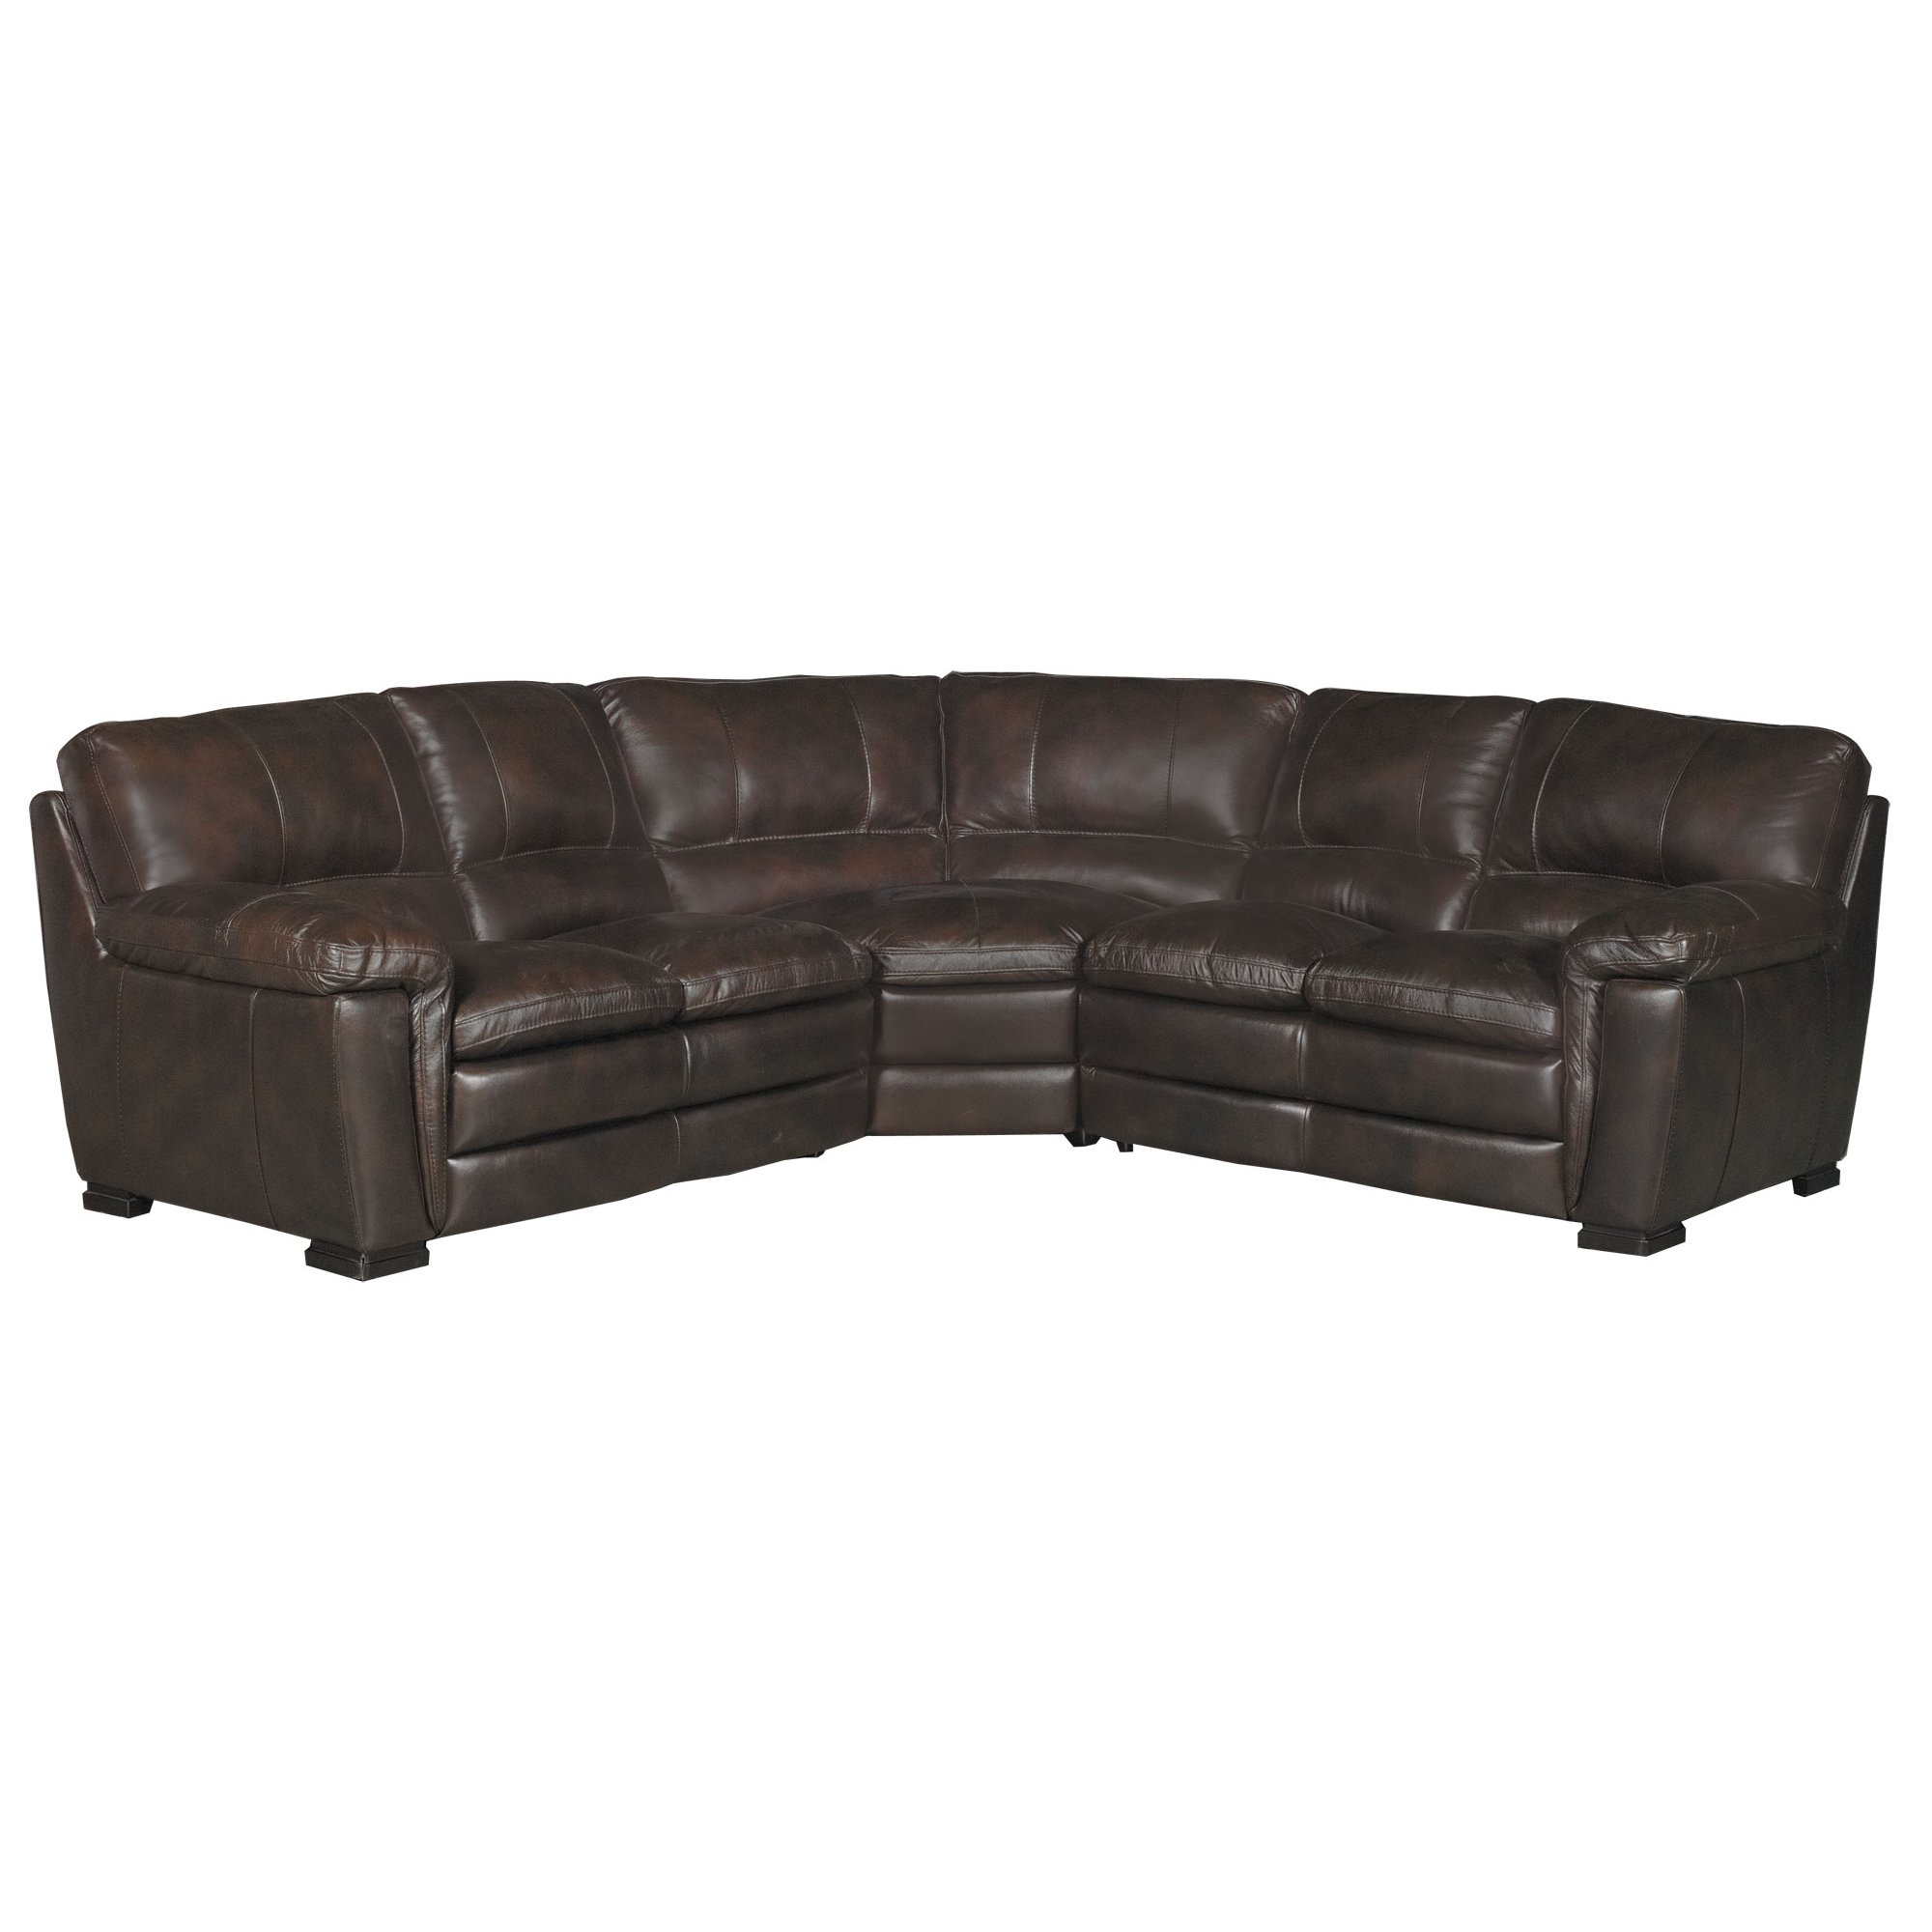 Brown Real Leather Couch Contemporary 3 Piece Brown Leather Sectional Sofa Tanner